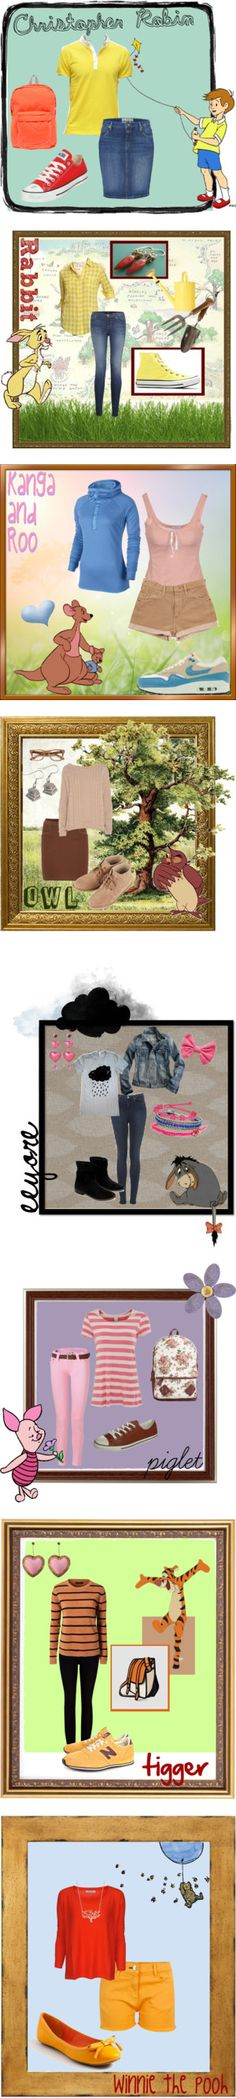 """Winnie the Pooh Disney bound """"Winnie the Pooh Inspired Outfits"""" by adorerodio on Polyvore"""